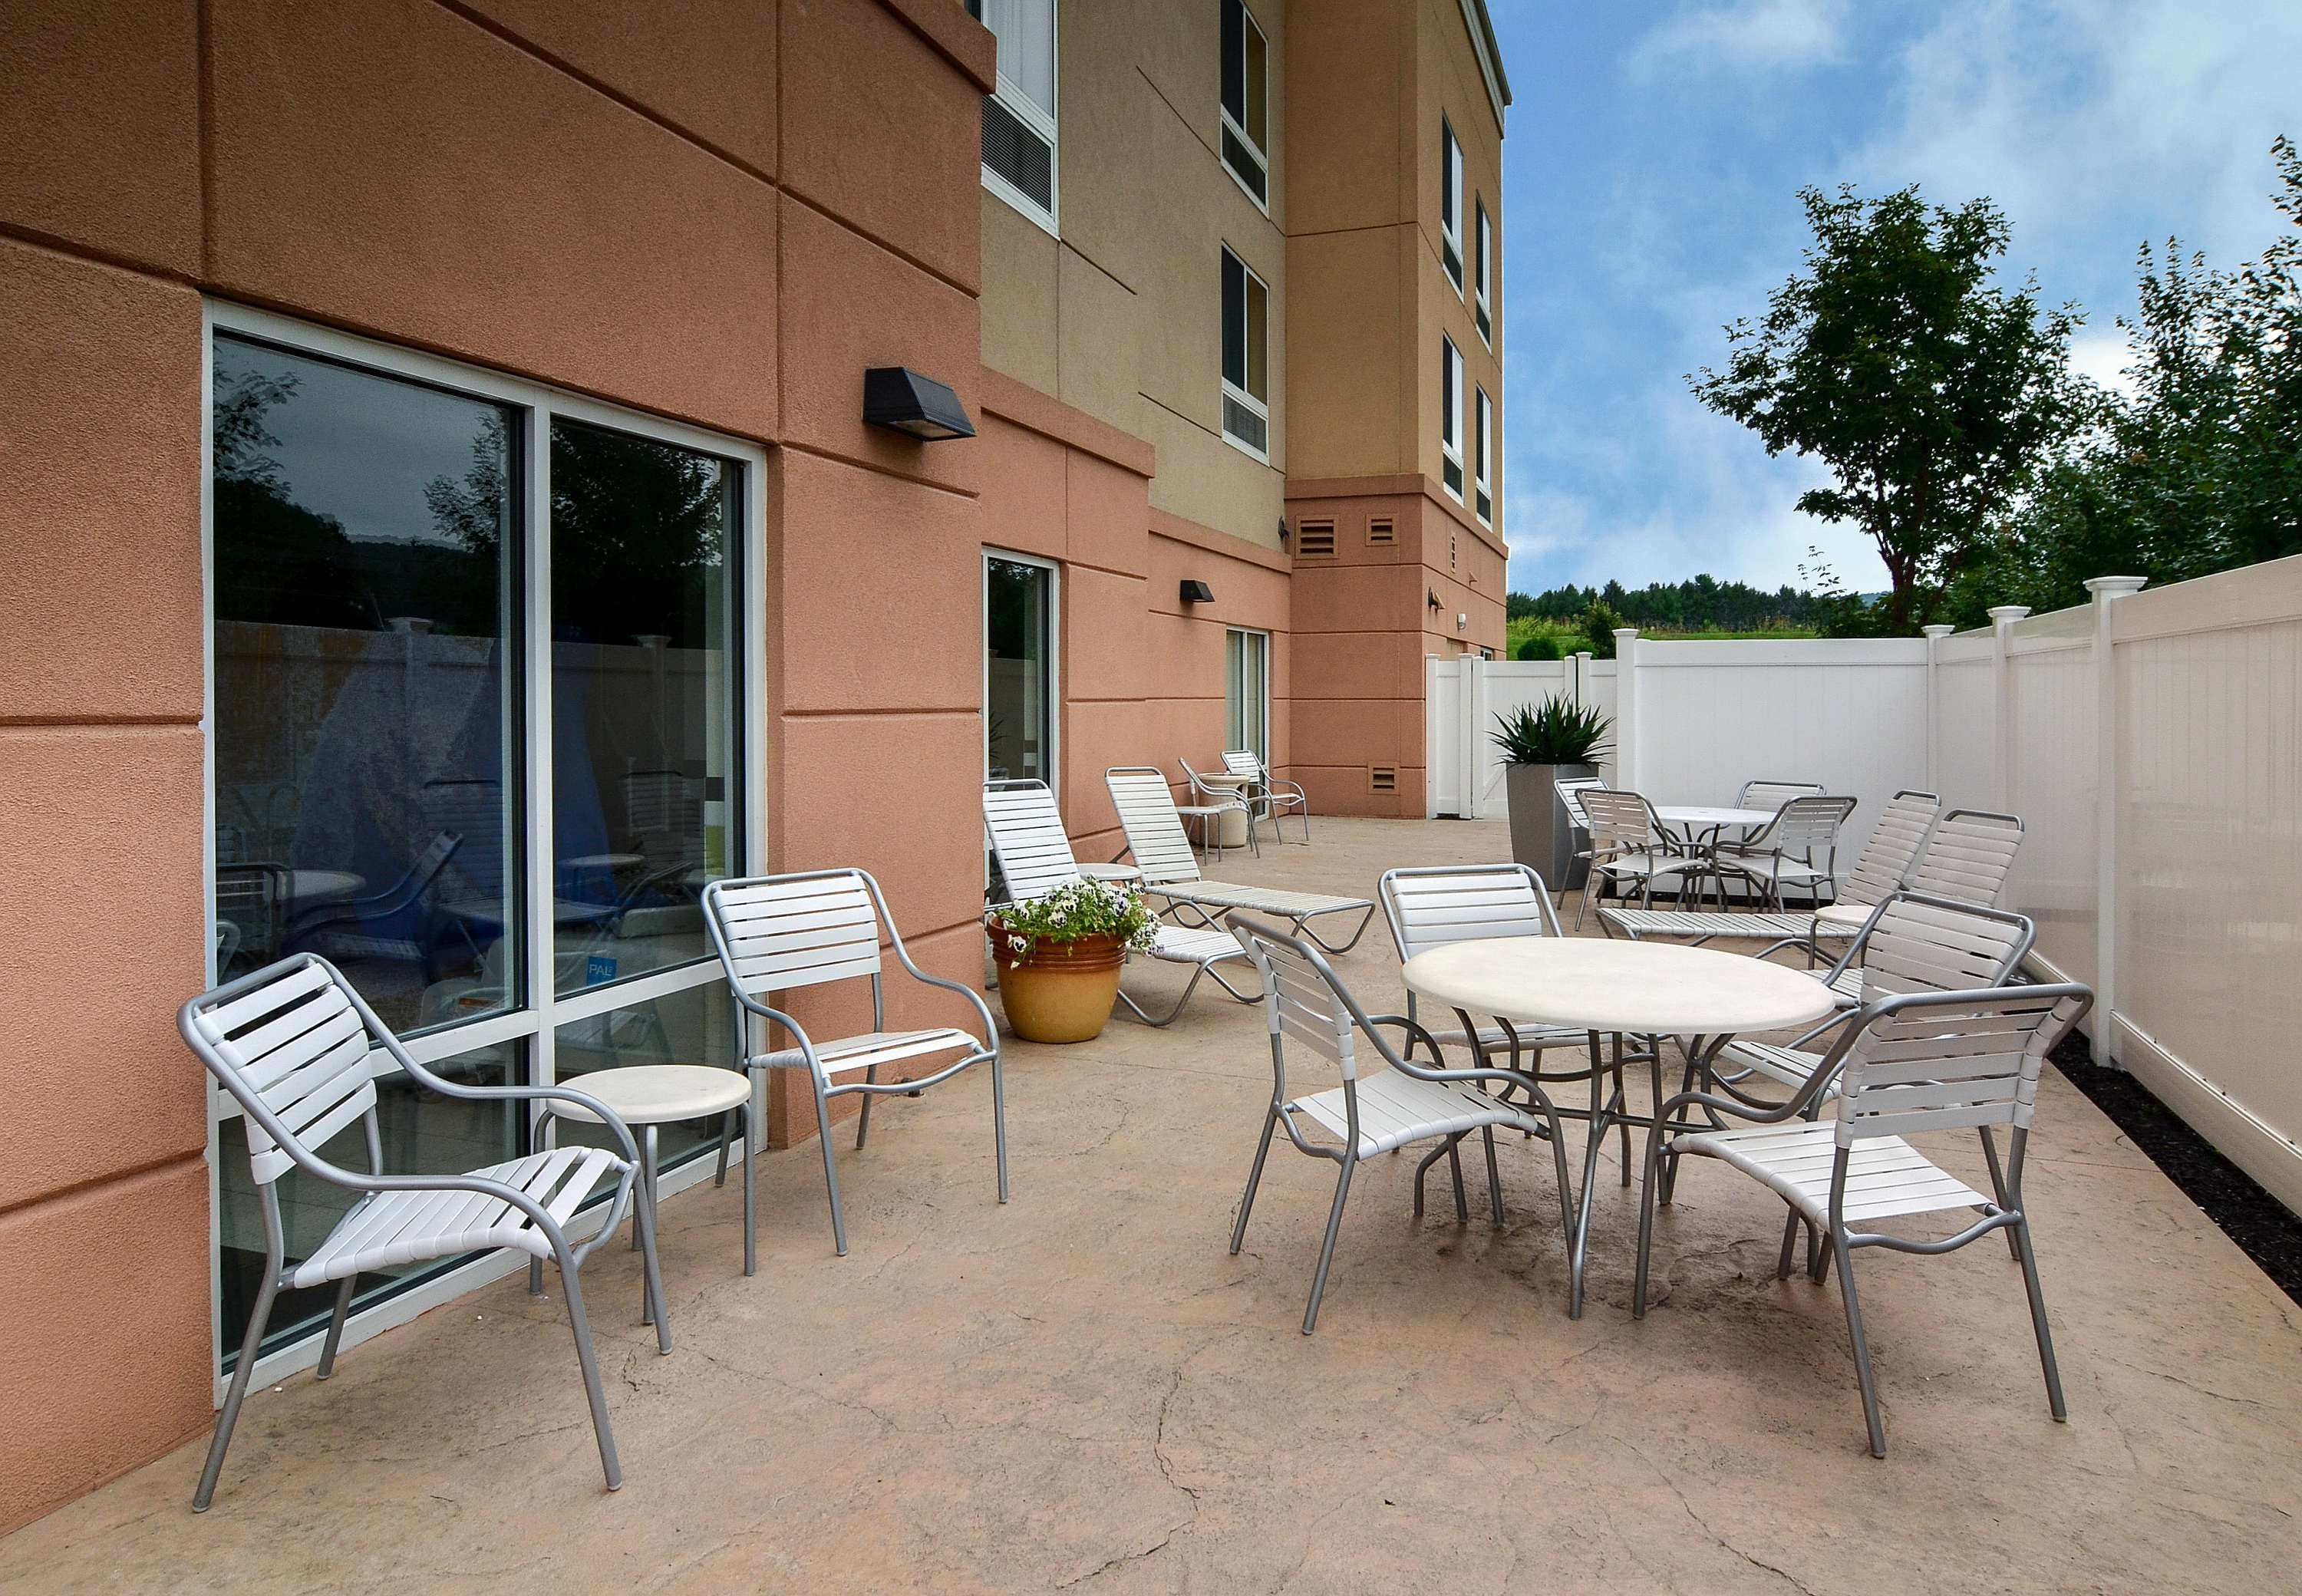 Fairfield Inn & Suites by Marriott Huntingdon Route 22/Raystown Lake image 1